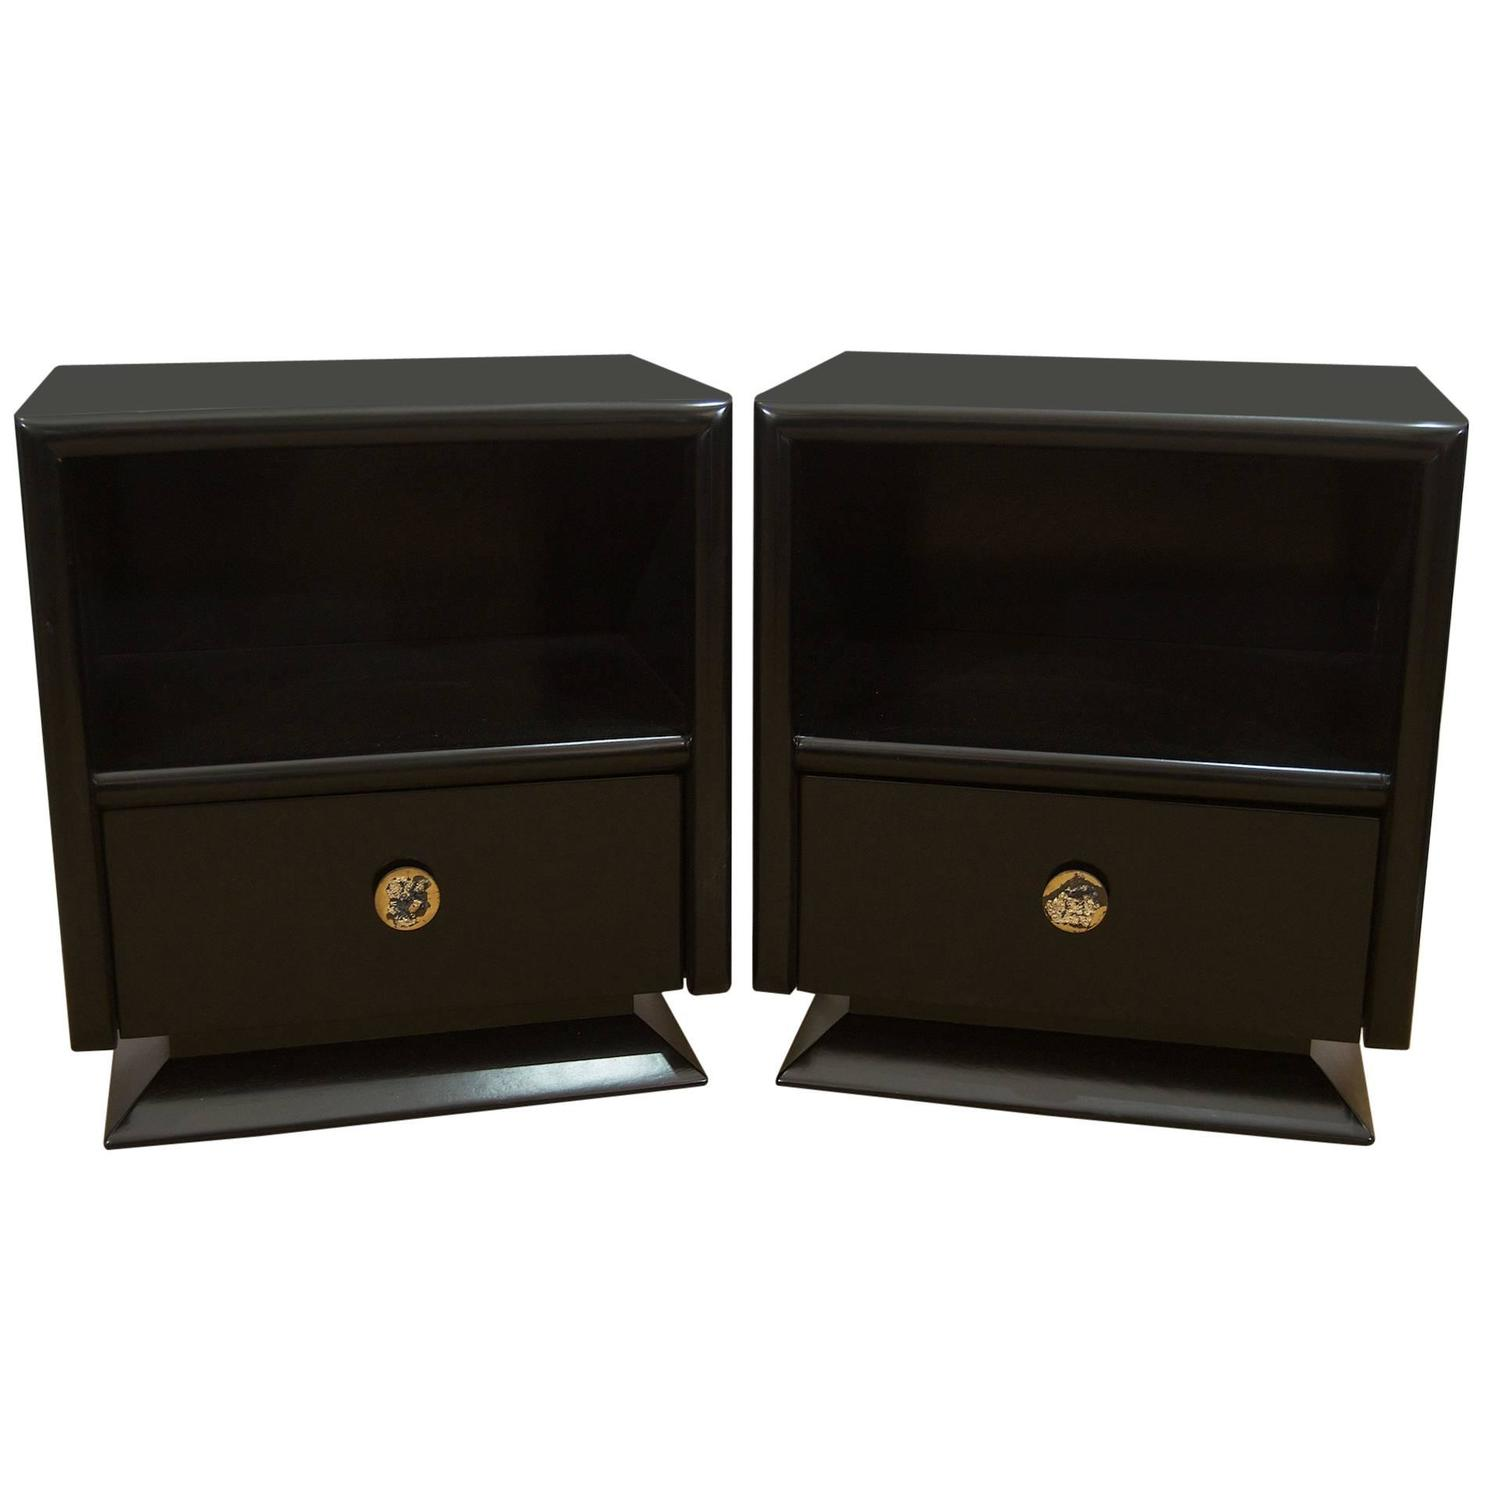 Pair Of Black Lacquer Nightstands At 1stdibs